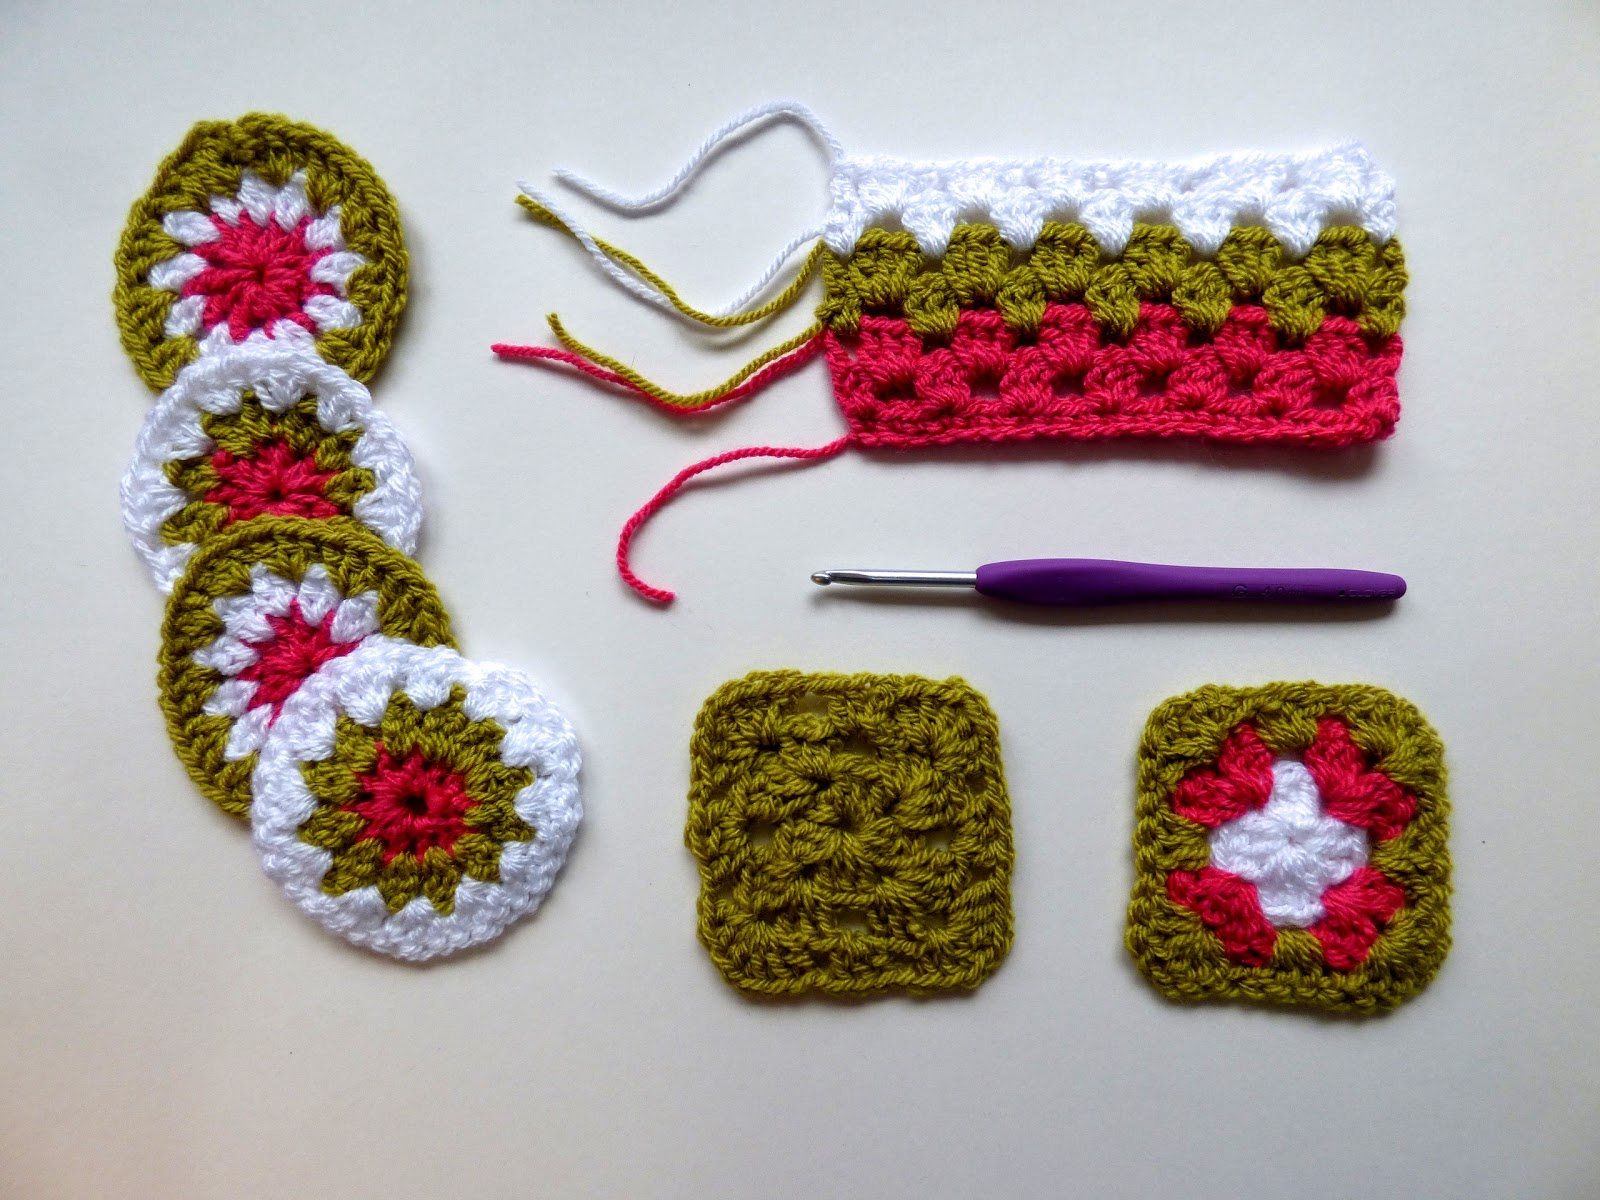 Things To Crochet  Learning Crochet With Beautiful Things Intermediate Course